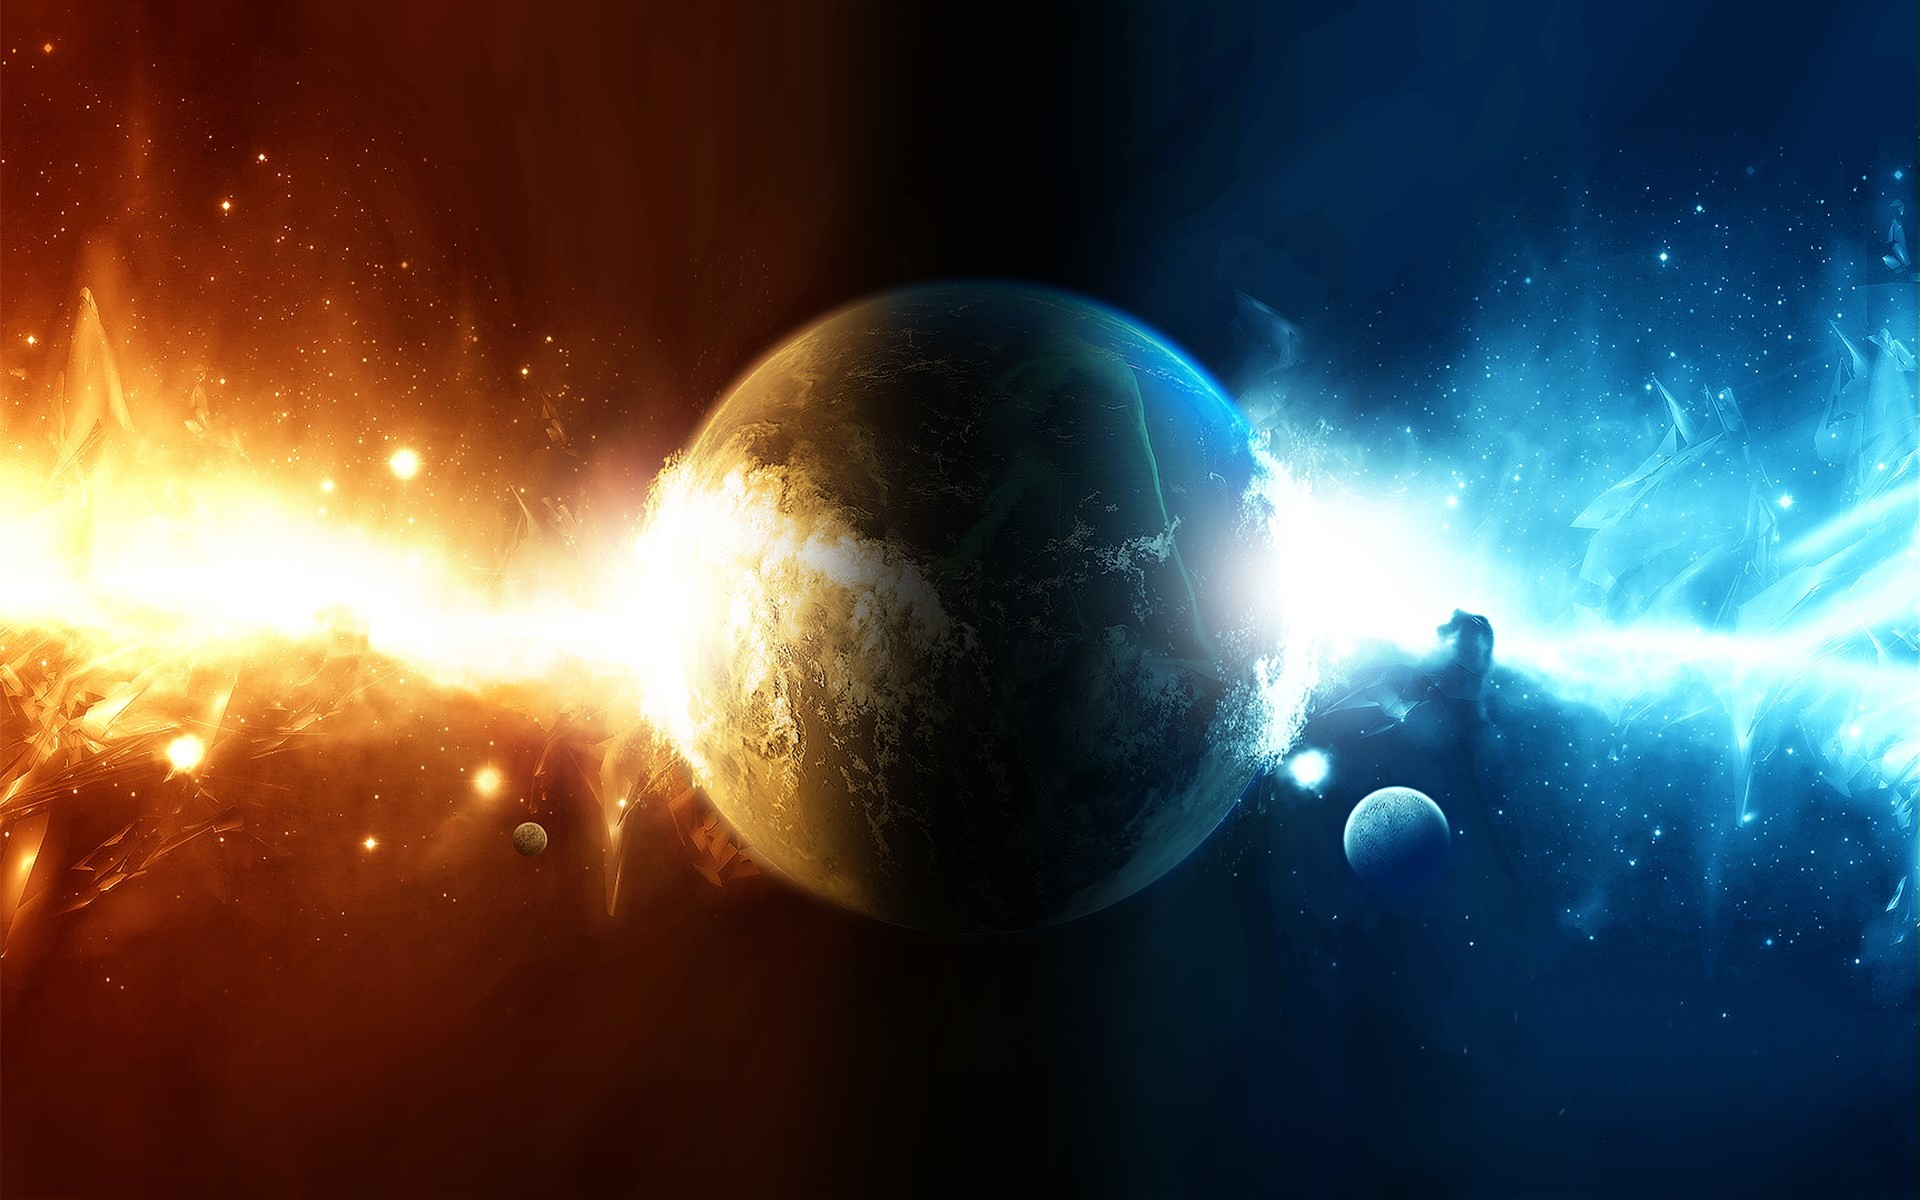 high resolution space wallpapers for desktop 1